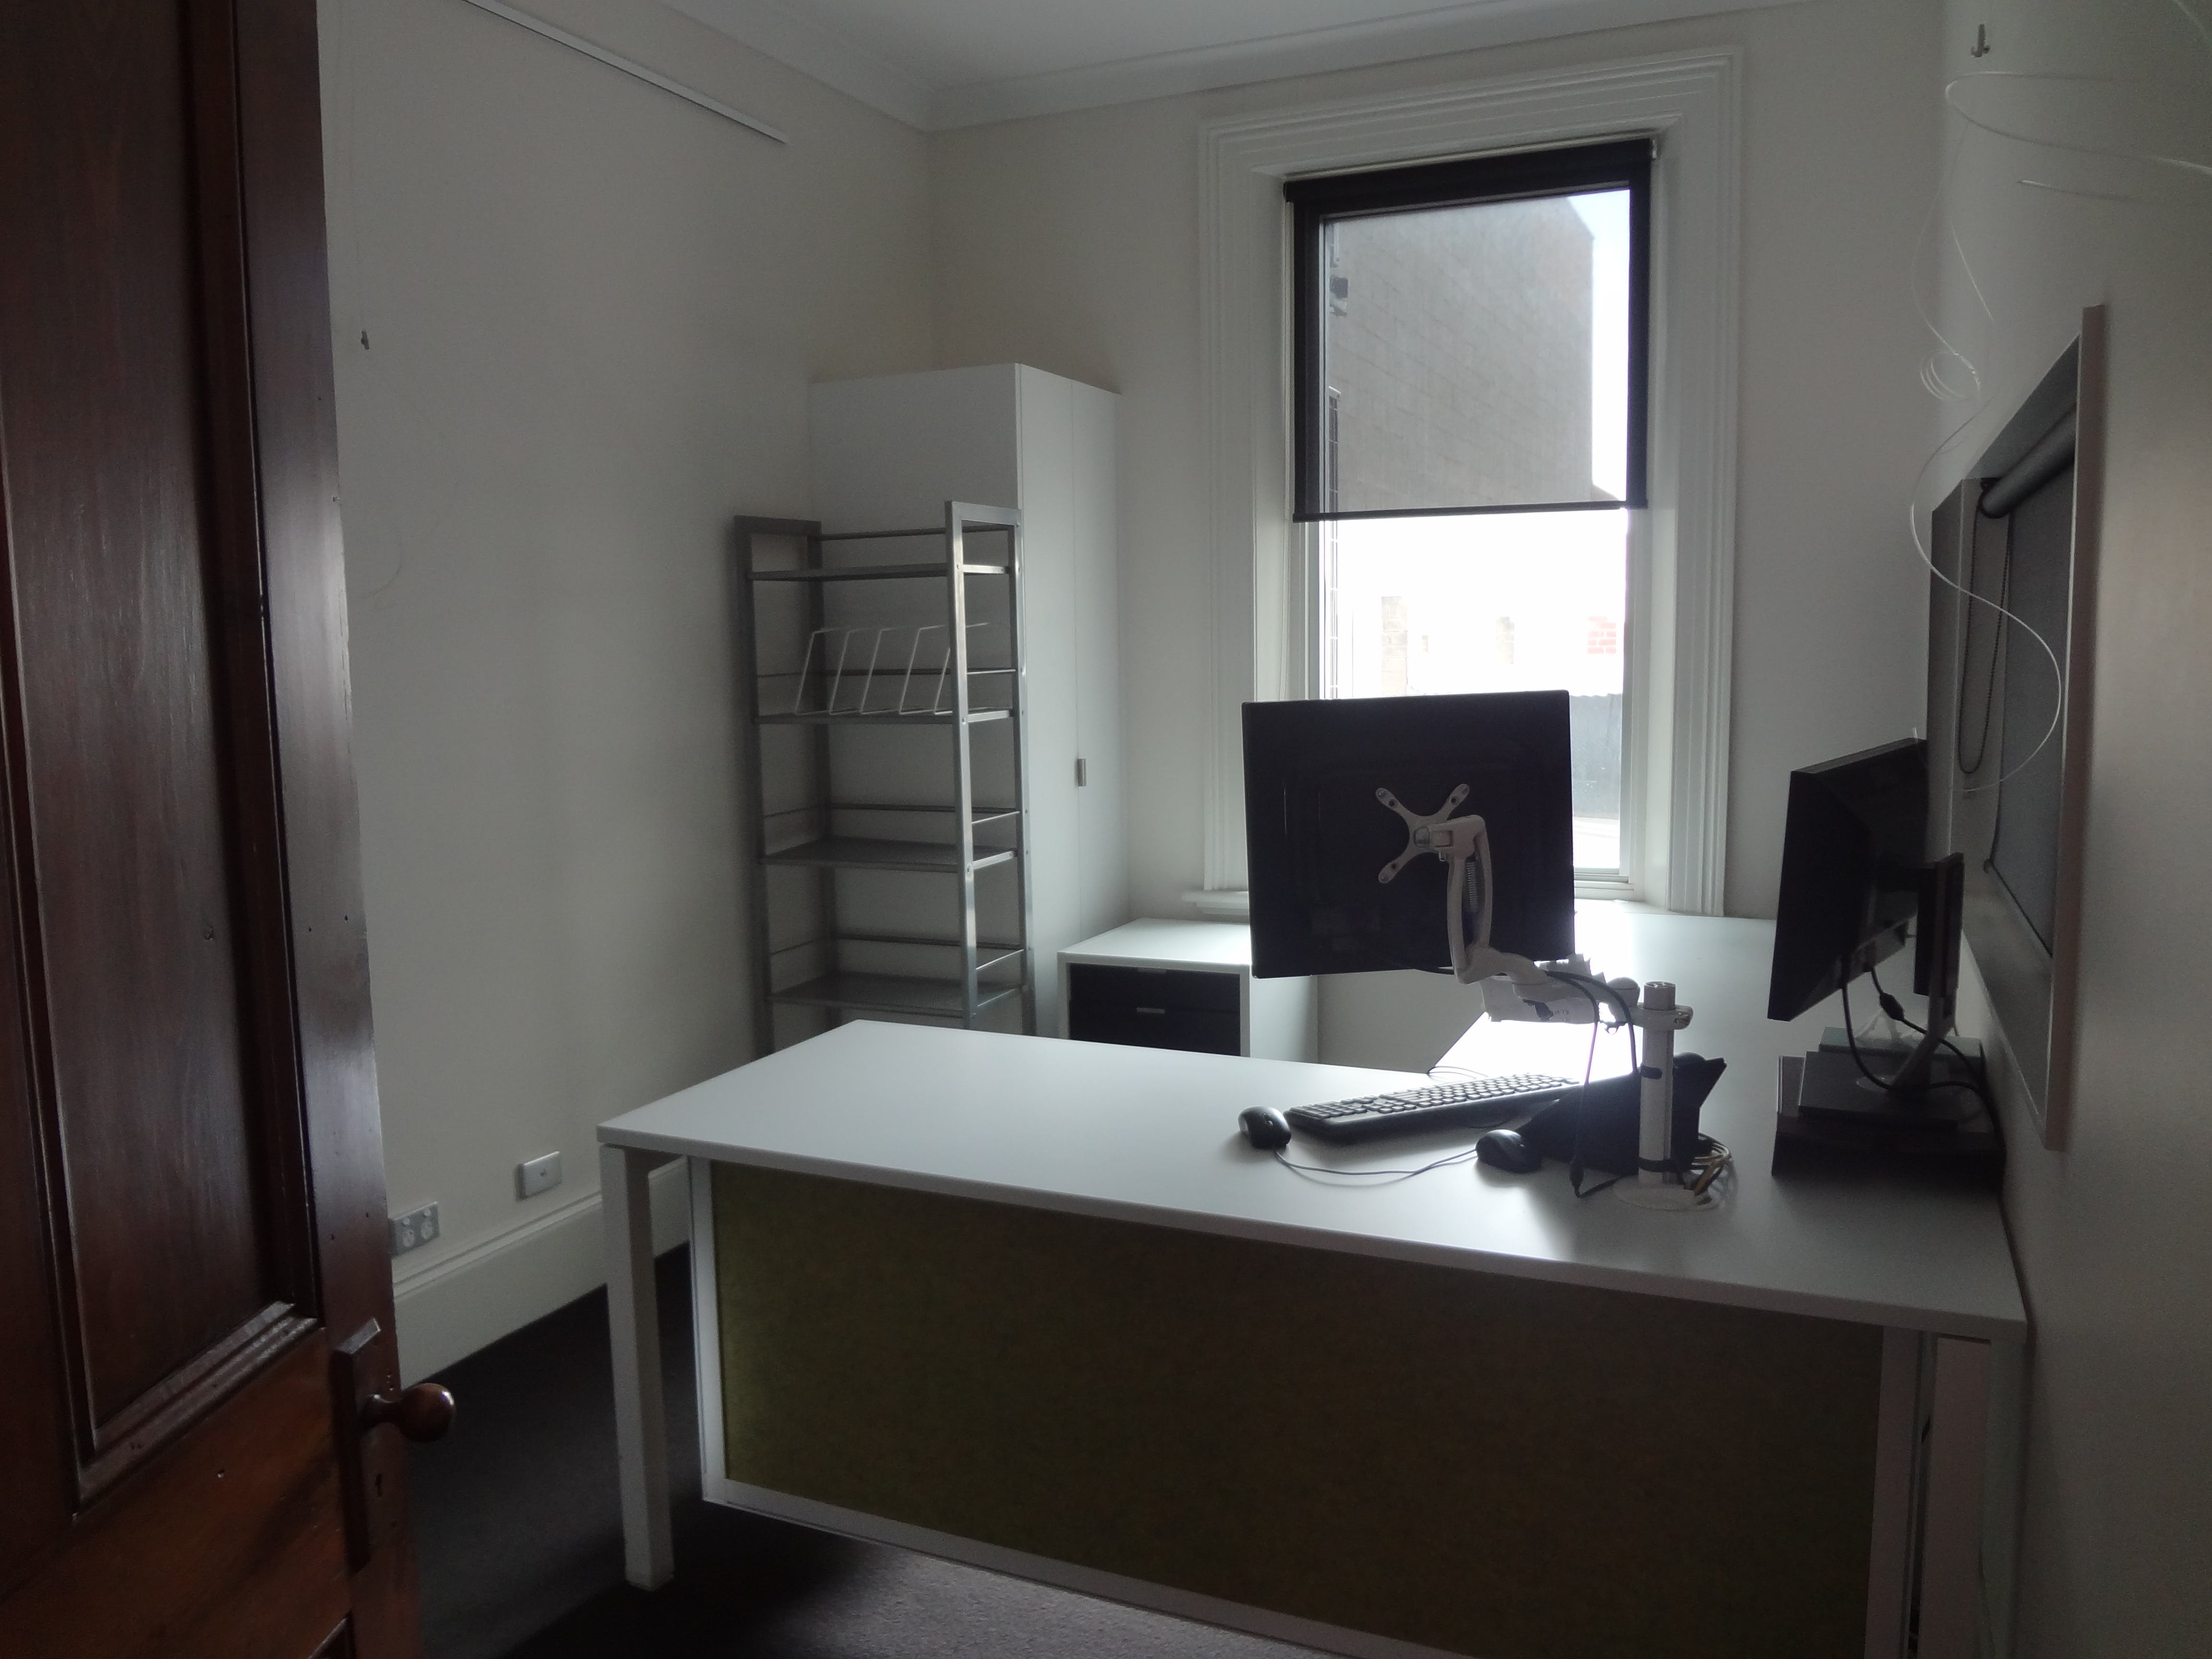 Office 1, private office at WBH Group, image 6